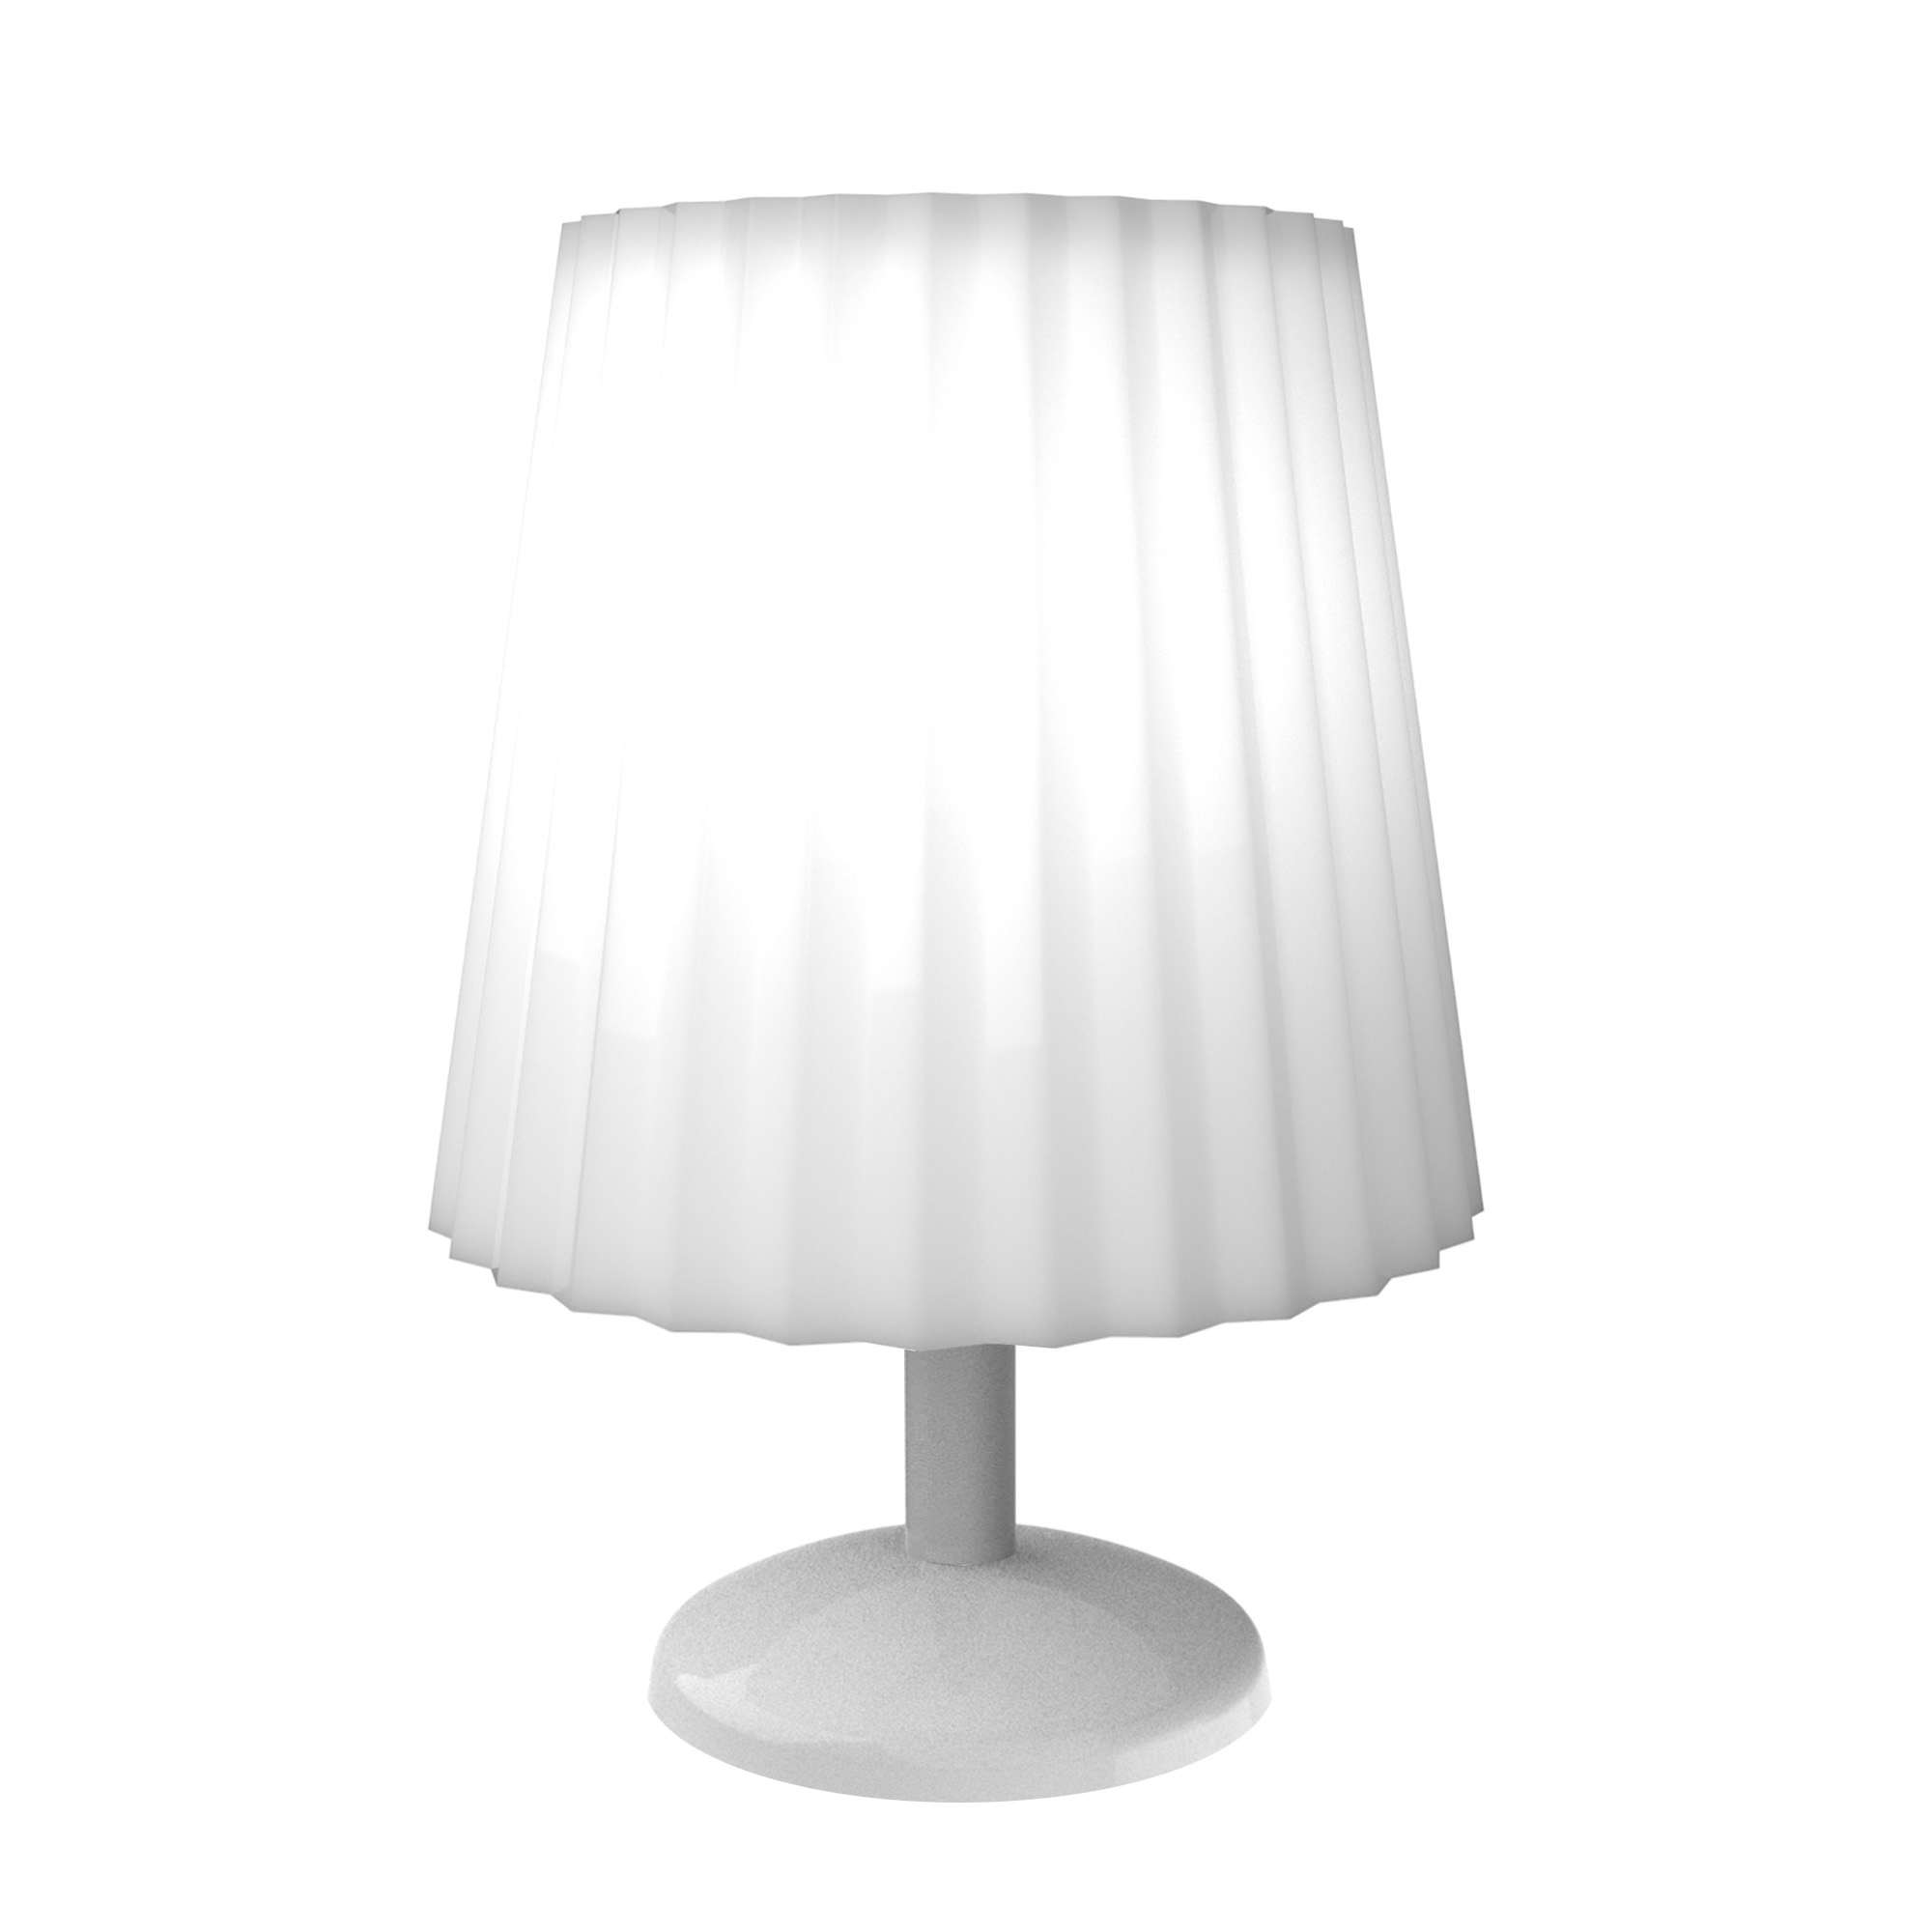 touch sensor lamp dimmable battery operated led light with stepless dimmer bedside desk. Black Bedroom Furniture Sets. Home Design Ideas